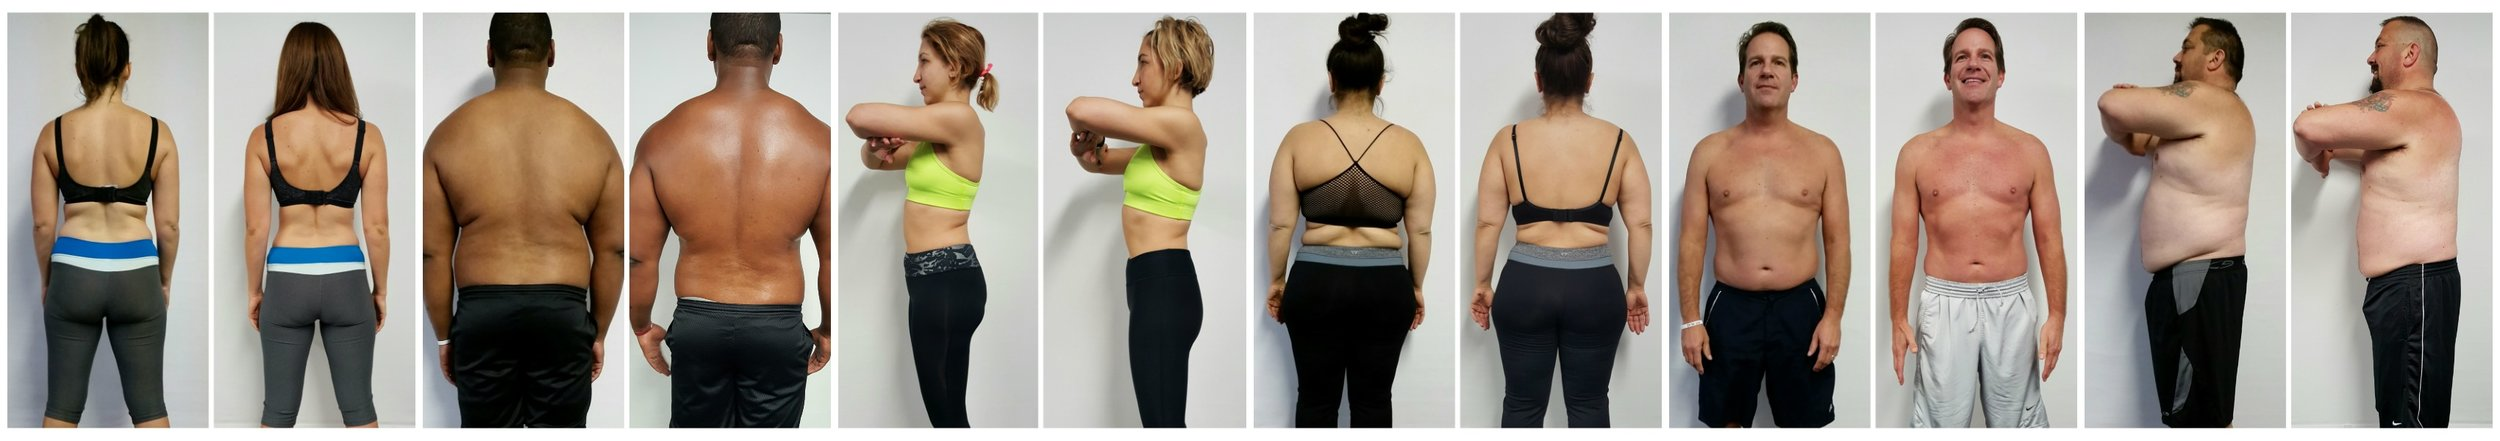 Results in only 42 days. You will feel the difference and everyone around you will notice it!